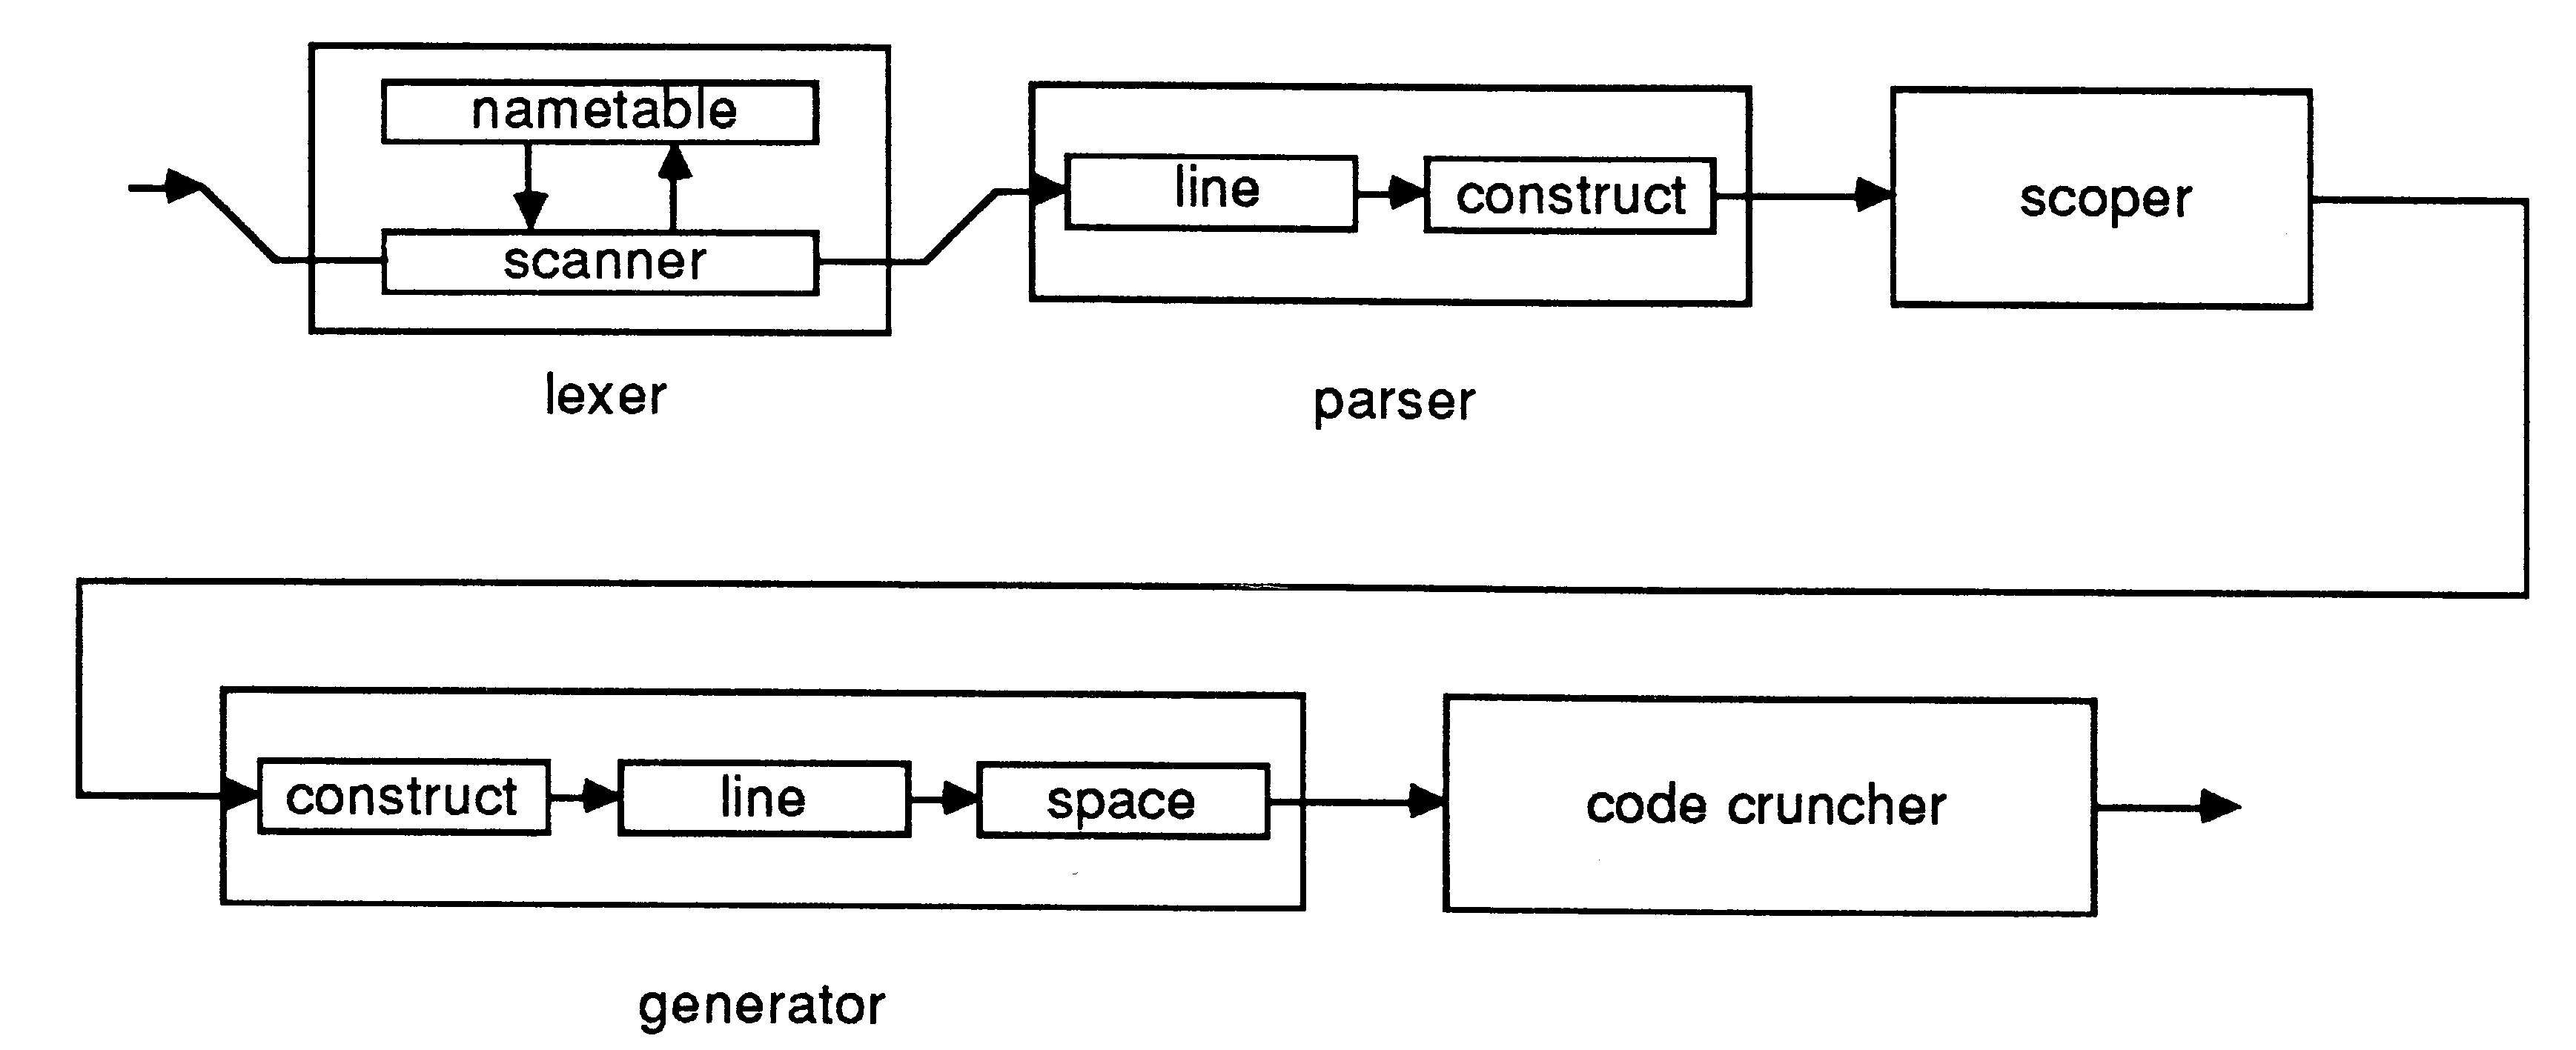 Let's Build a Compiler, by Jack Crenshaw